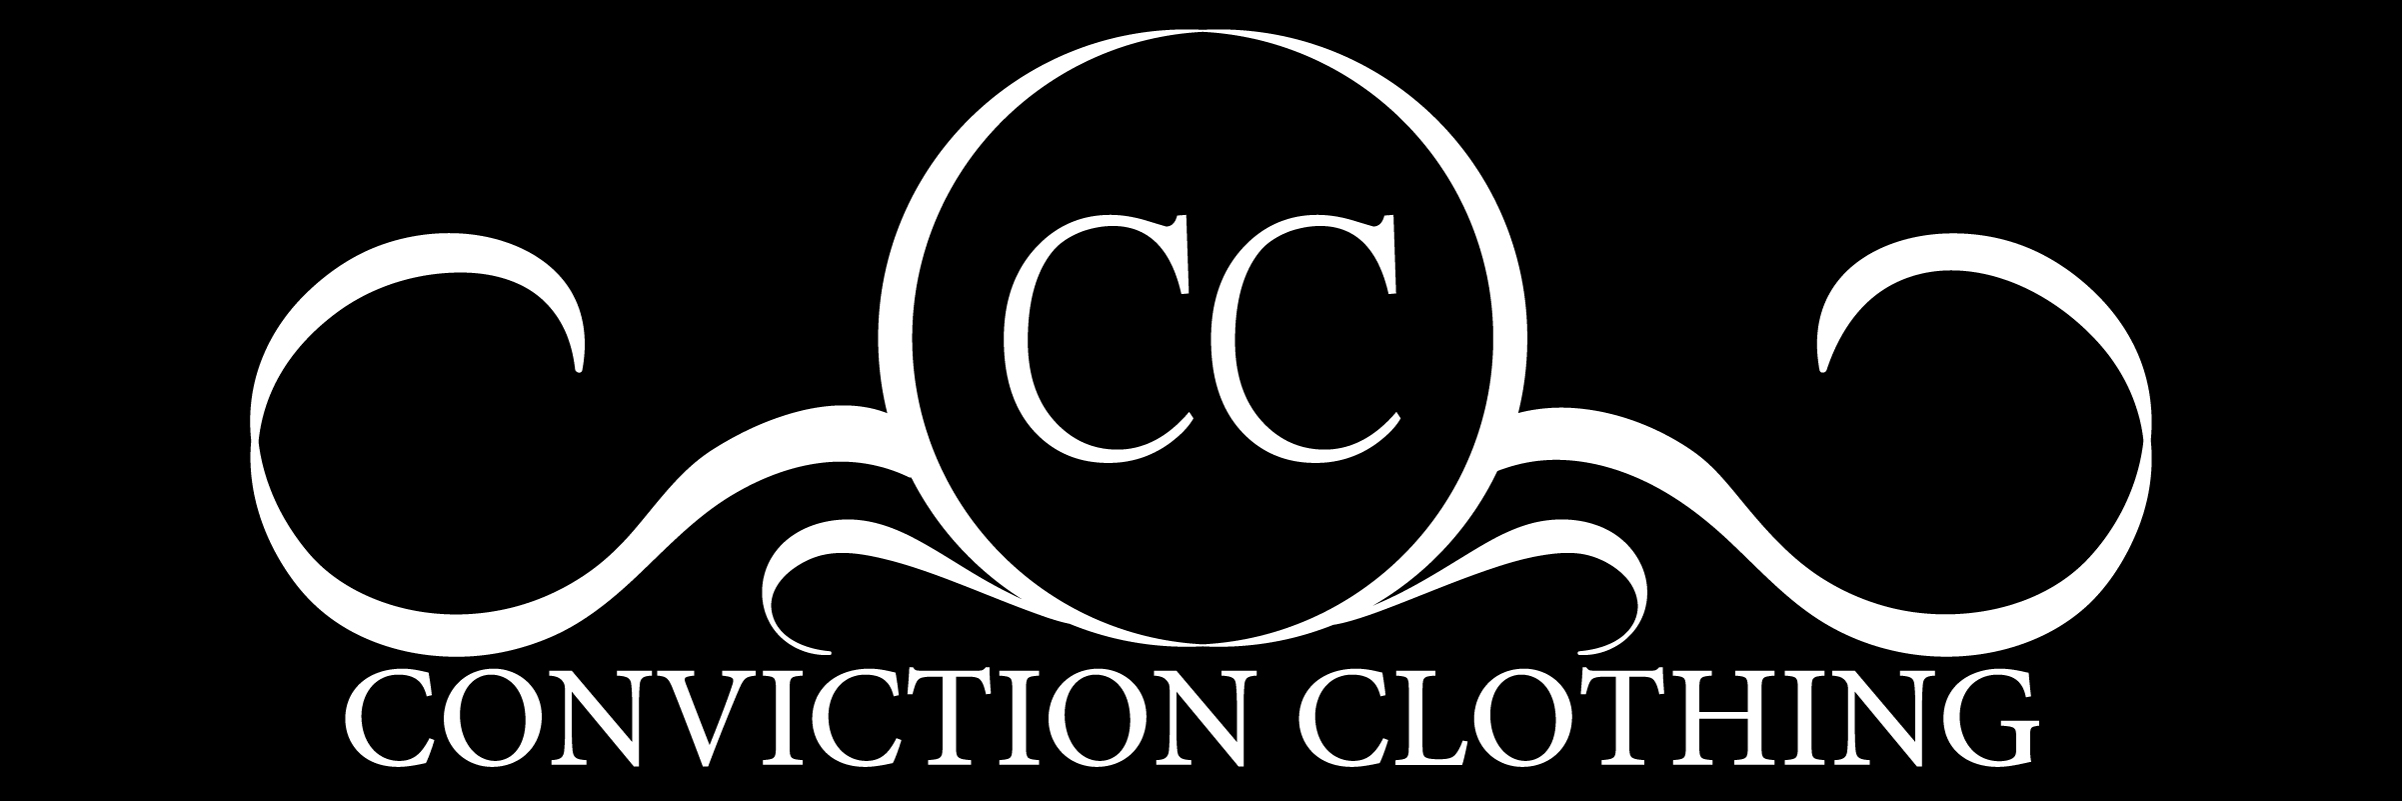 C_couture_logo.....jpg